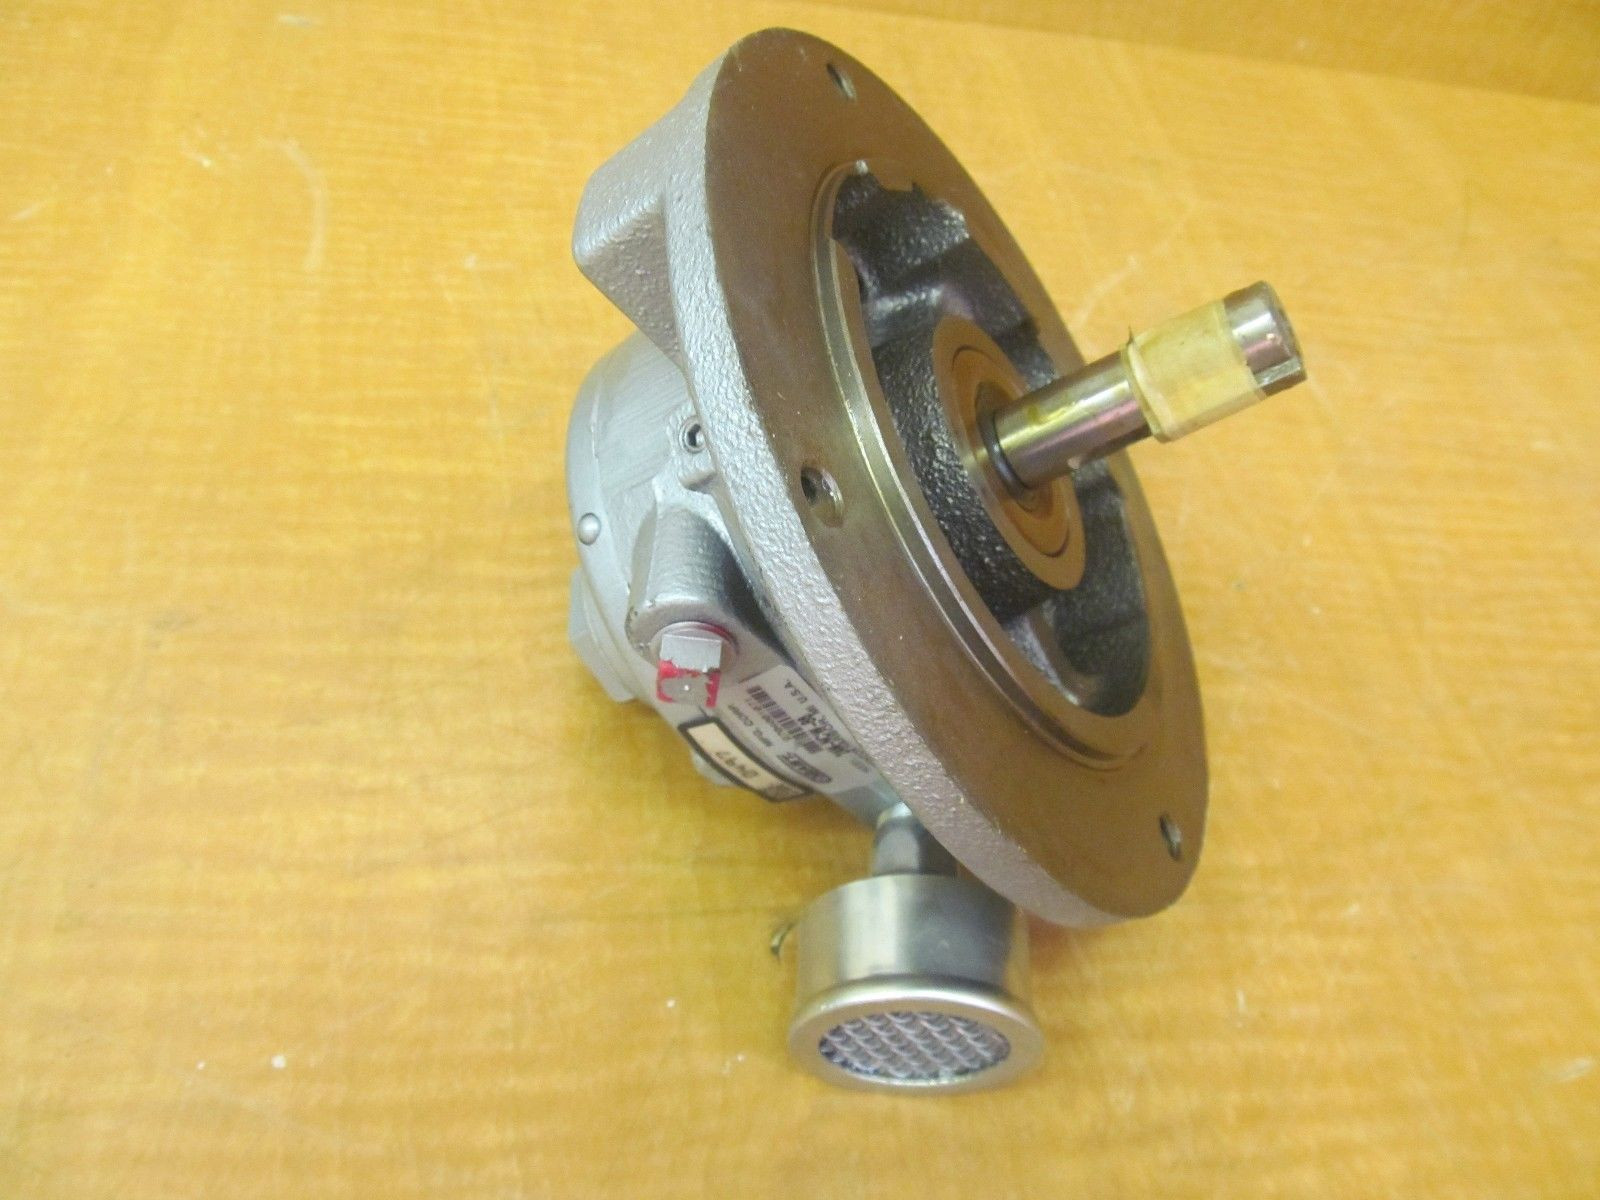 New Gast Air Motor 2am Ncw 6 Industrial Solutions Authority